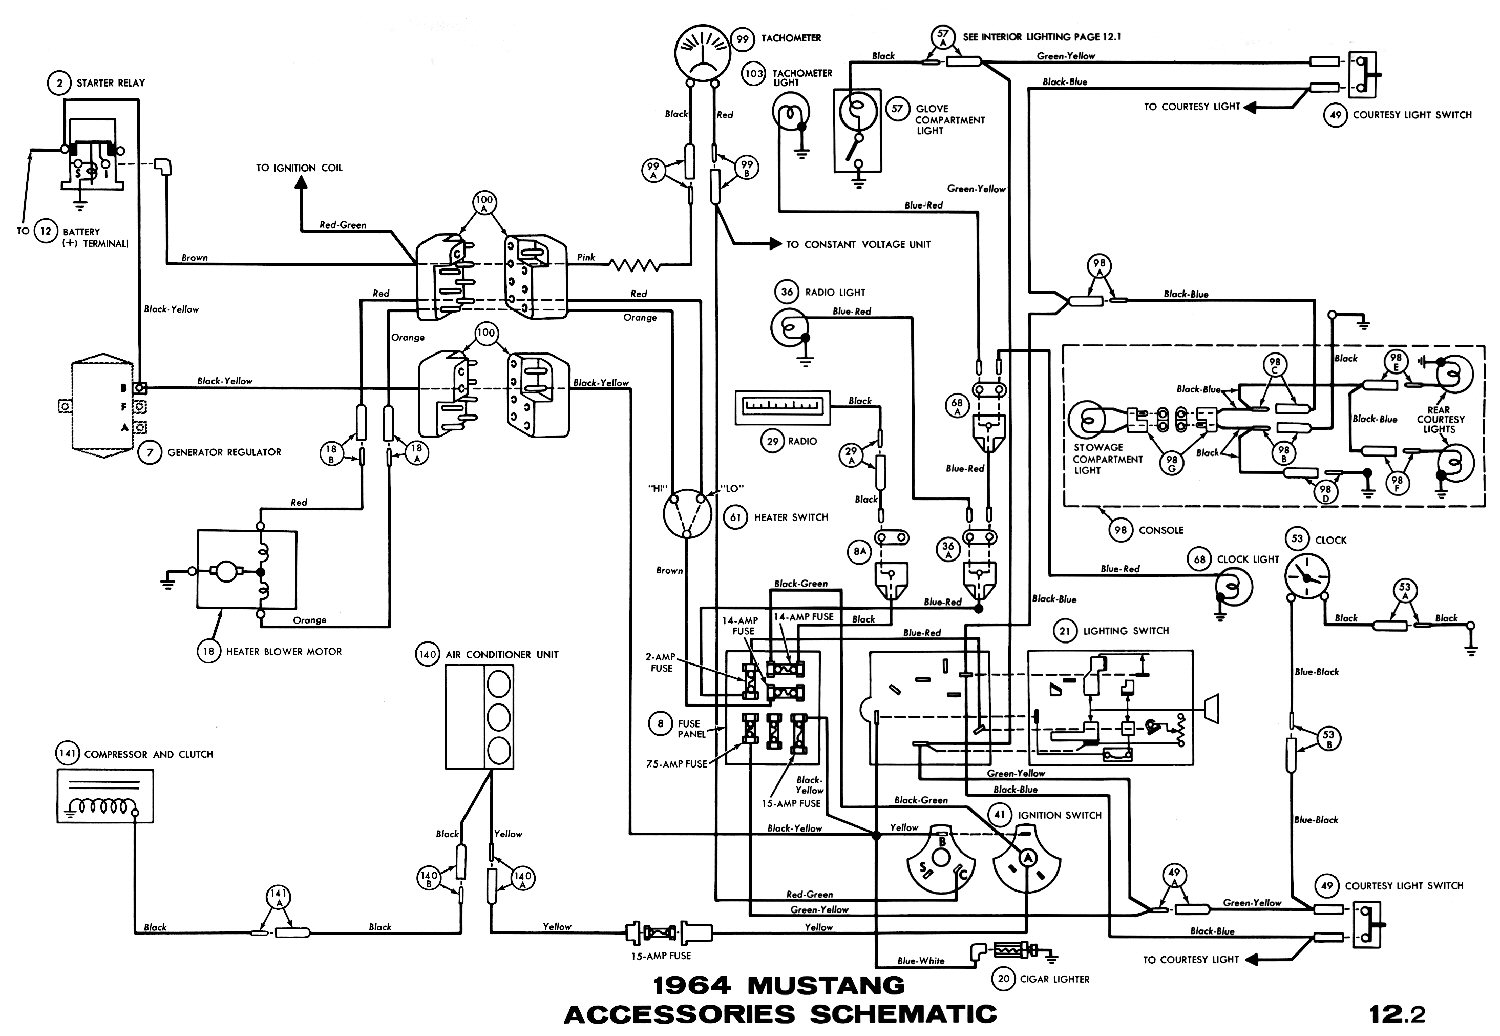 wiring diagram for a 1967 mustang